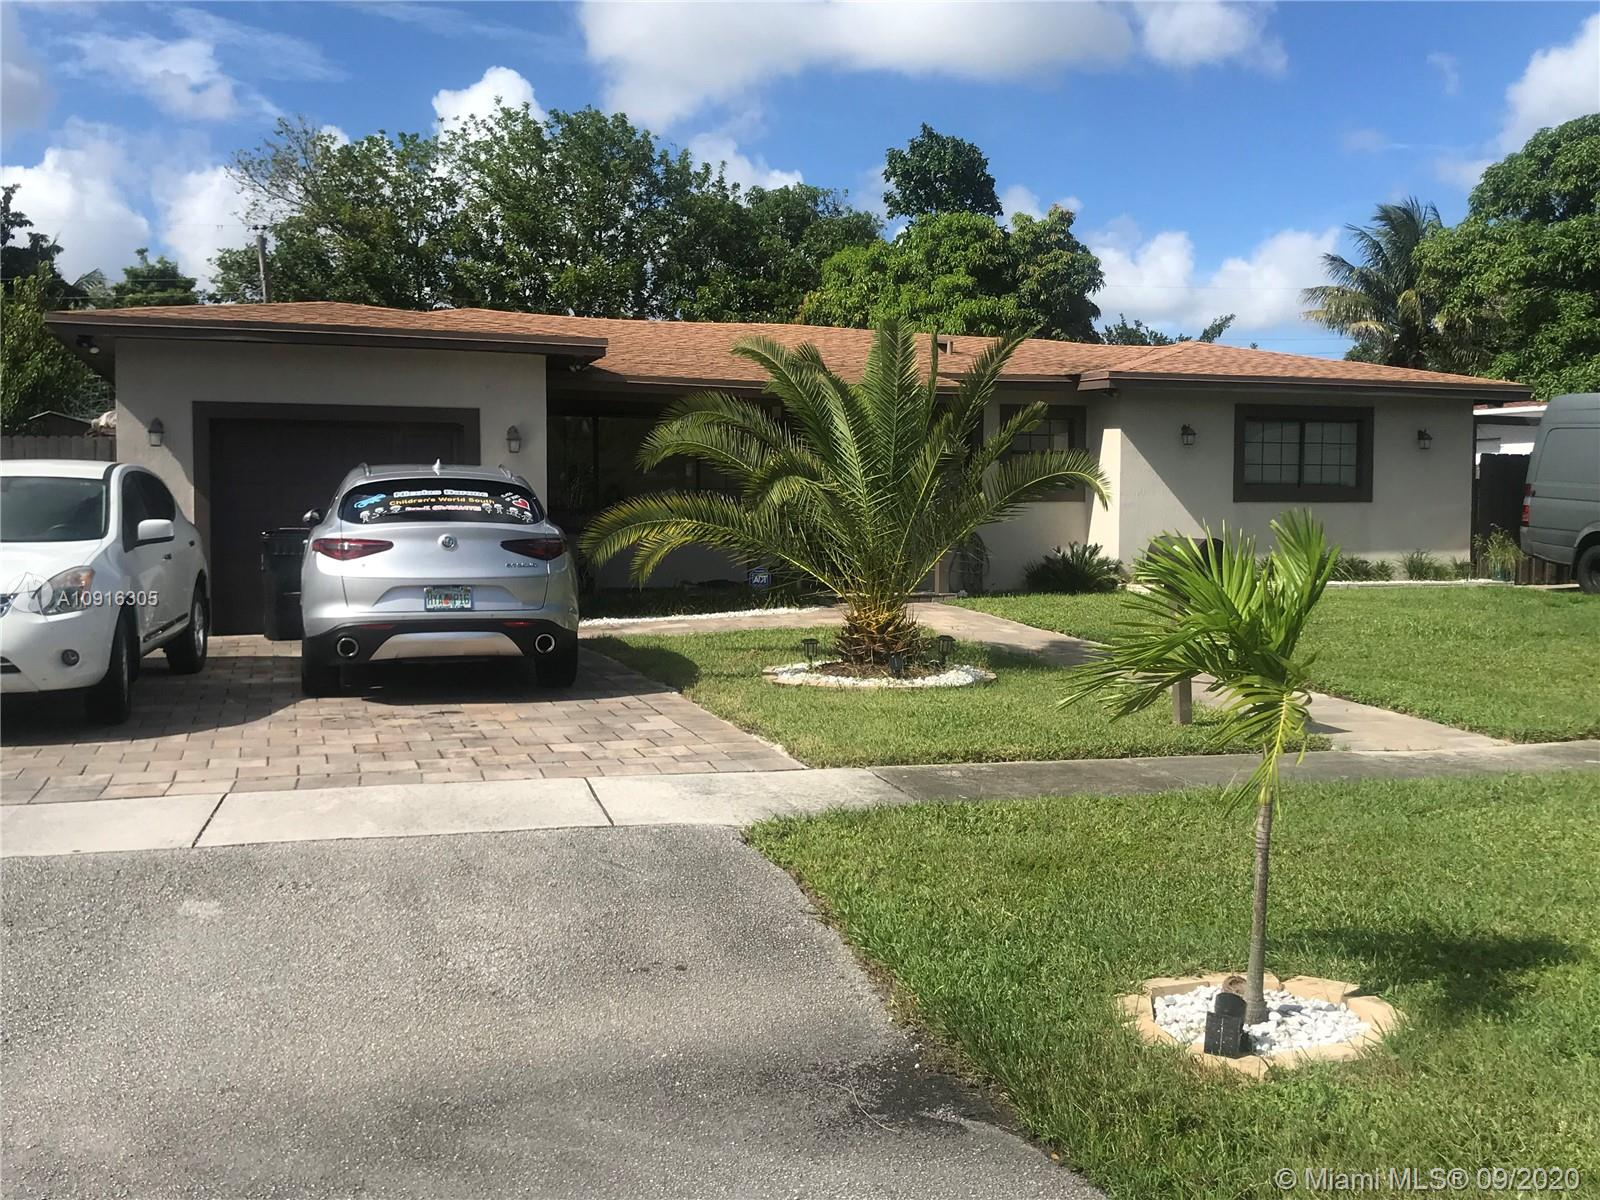 BEUTIFUL HOUSE, THE BEST PROPERTY IN THE NEIGHBORHOOD, COMPLETELY REMODELED (PLUMBING, ELECTRICITY, FLOORS, A / C, BATHROOMS, CEILING, LAUNDRY) ALL NEW TOP QUALITY, SPECTACULAR PATIO, LARGE TERRACE WITH CEILING FANS, WELL LIT, WITH FULL KITCHEN, OVEN, STAINLESS STEEL GRILL, NICE POOL, PLAYGROUND, STORAGE ROOM AND MUCH MORE